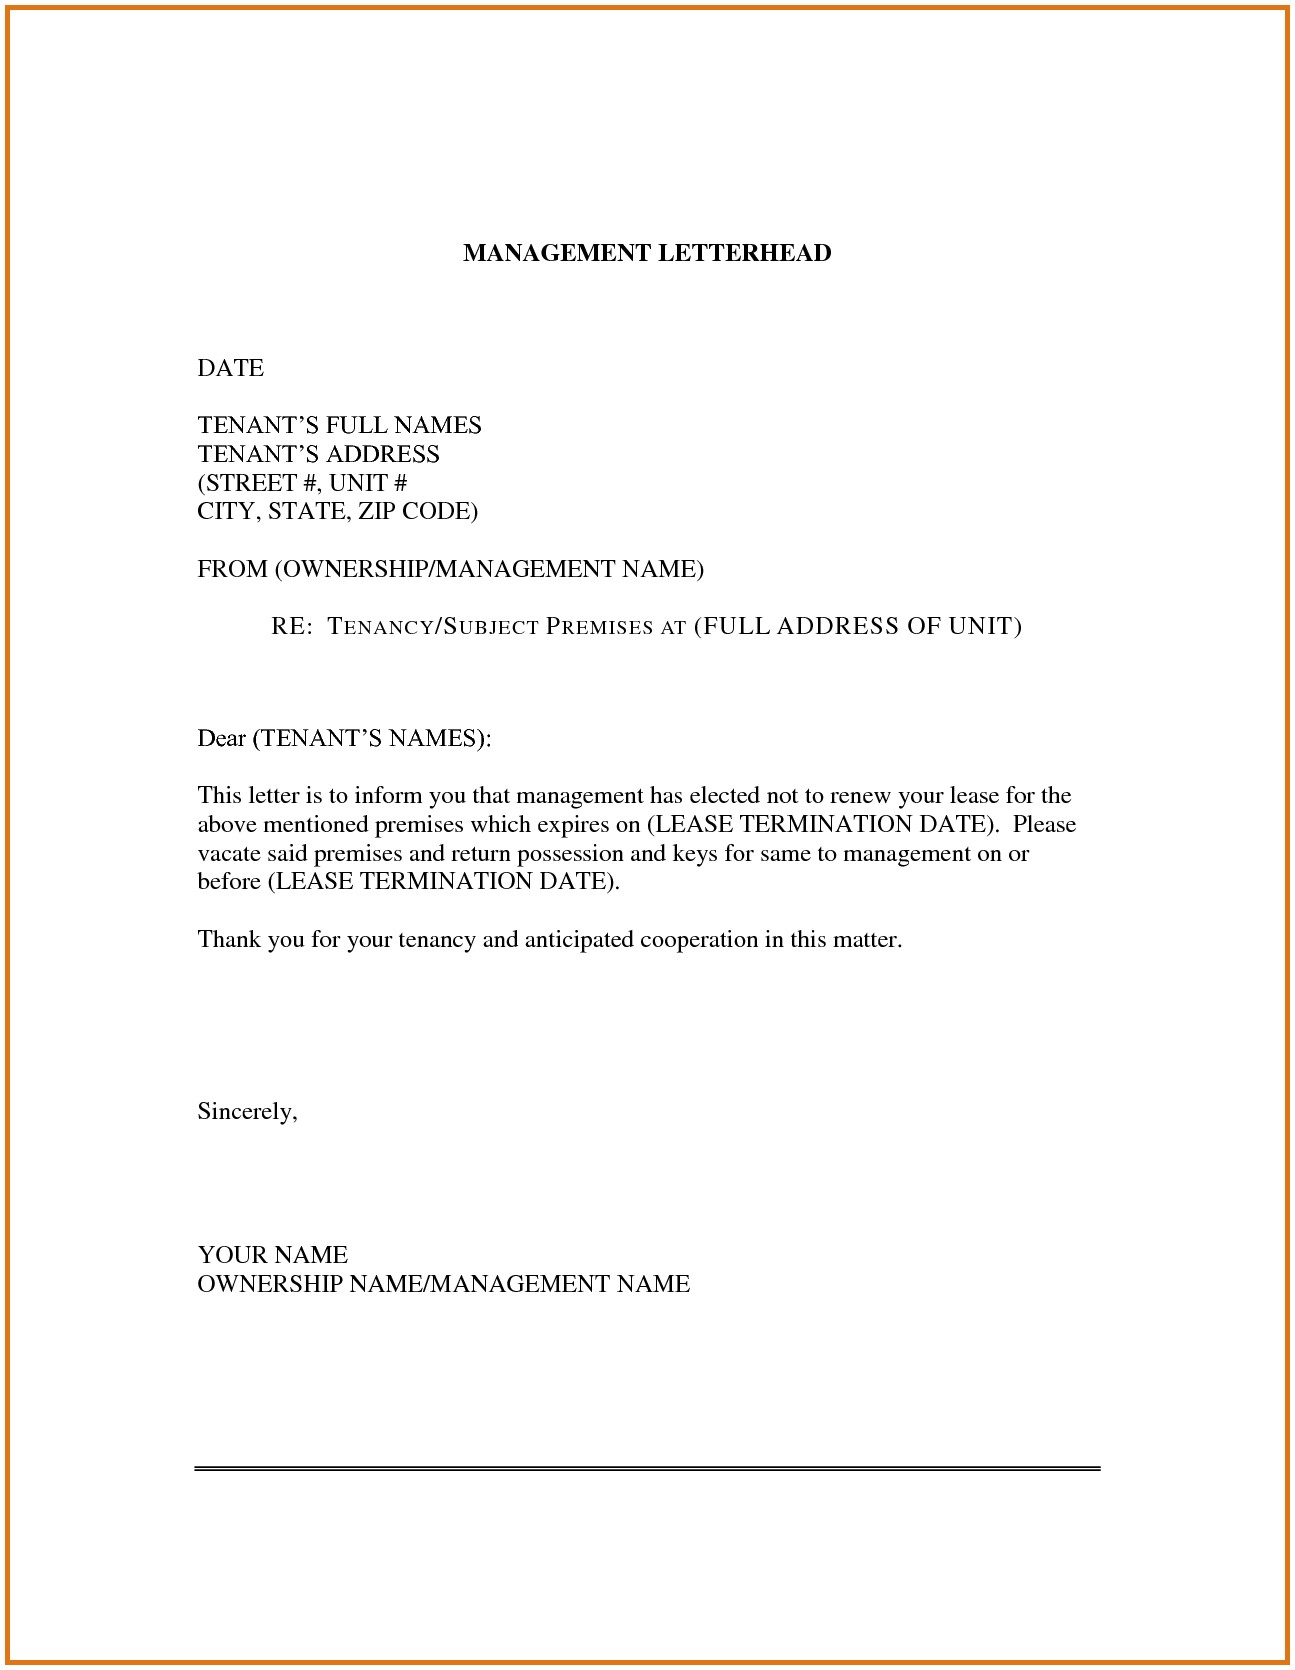 Lease Renewal Letter Template - Lease Renewal Letter